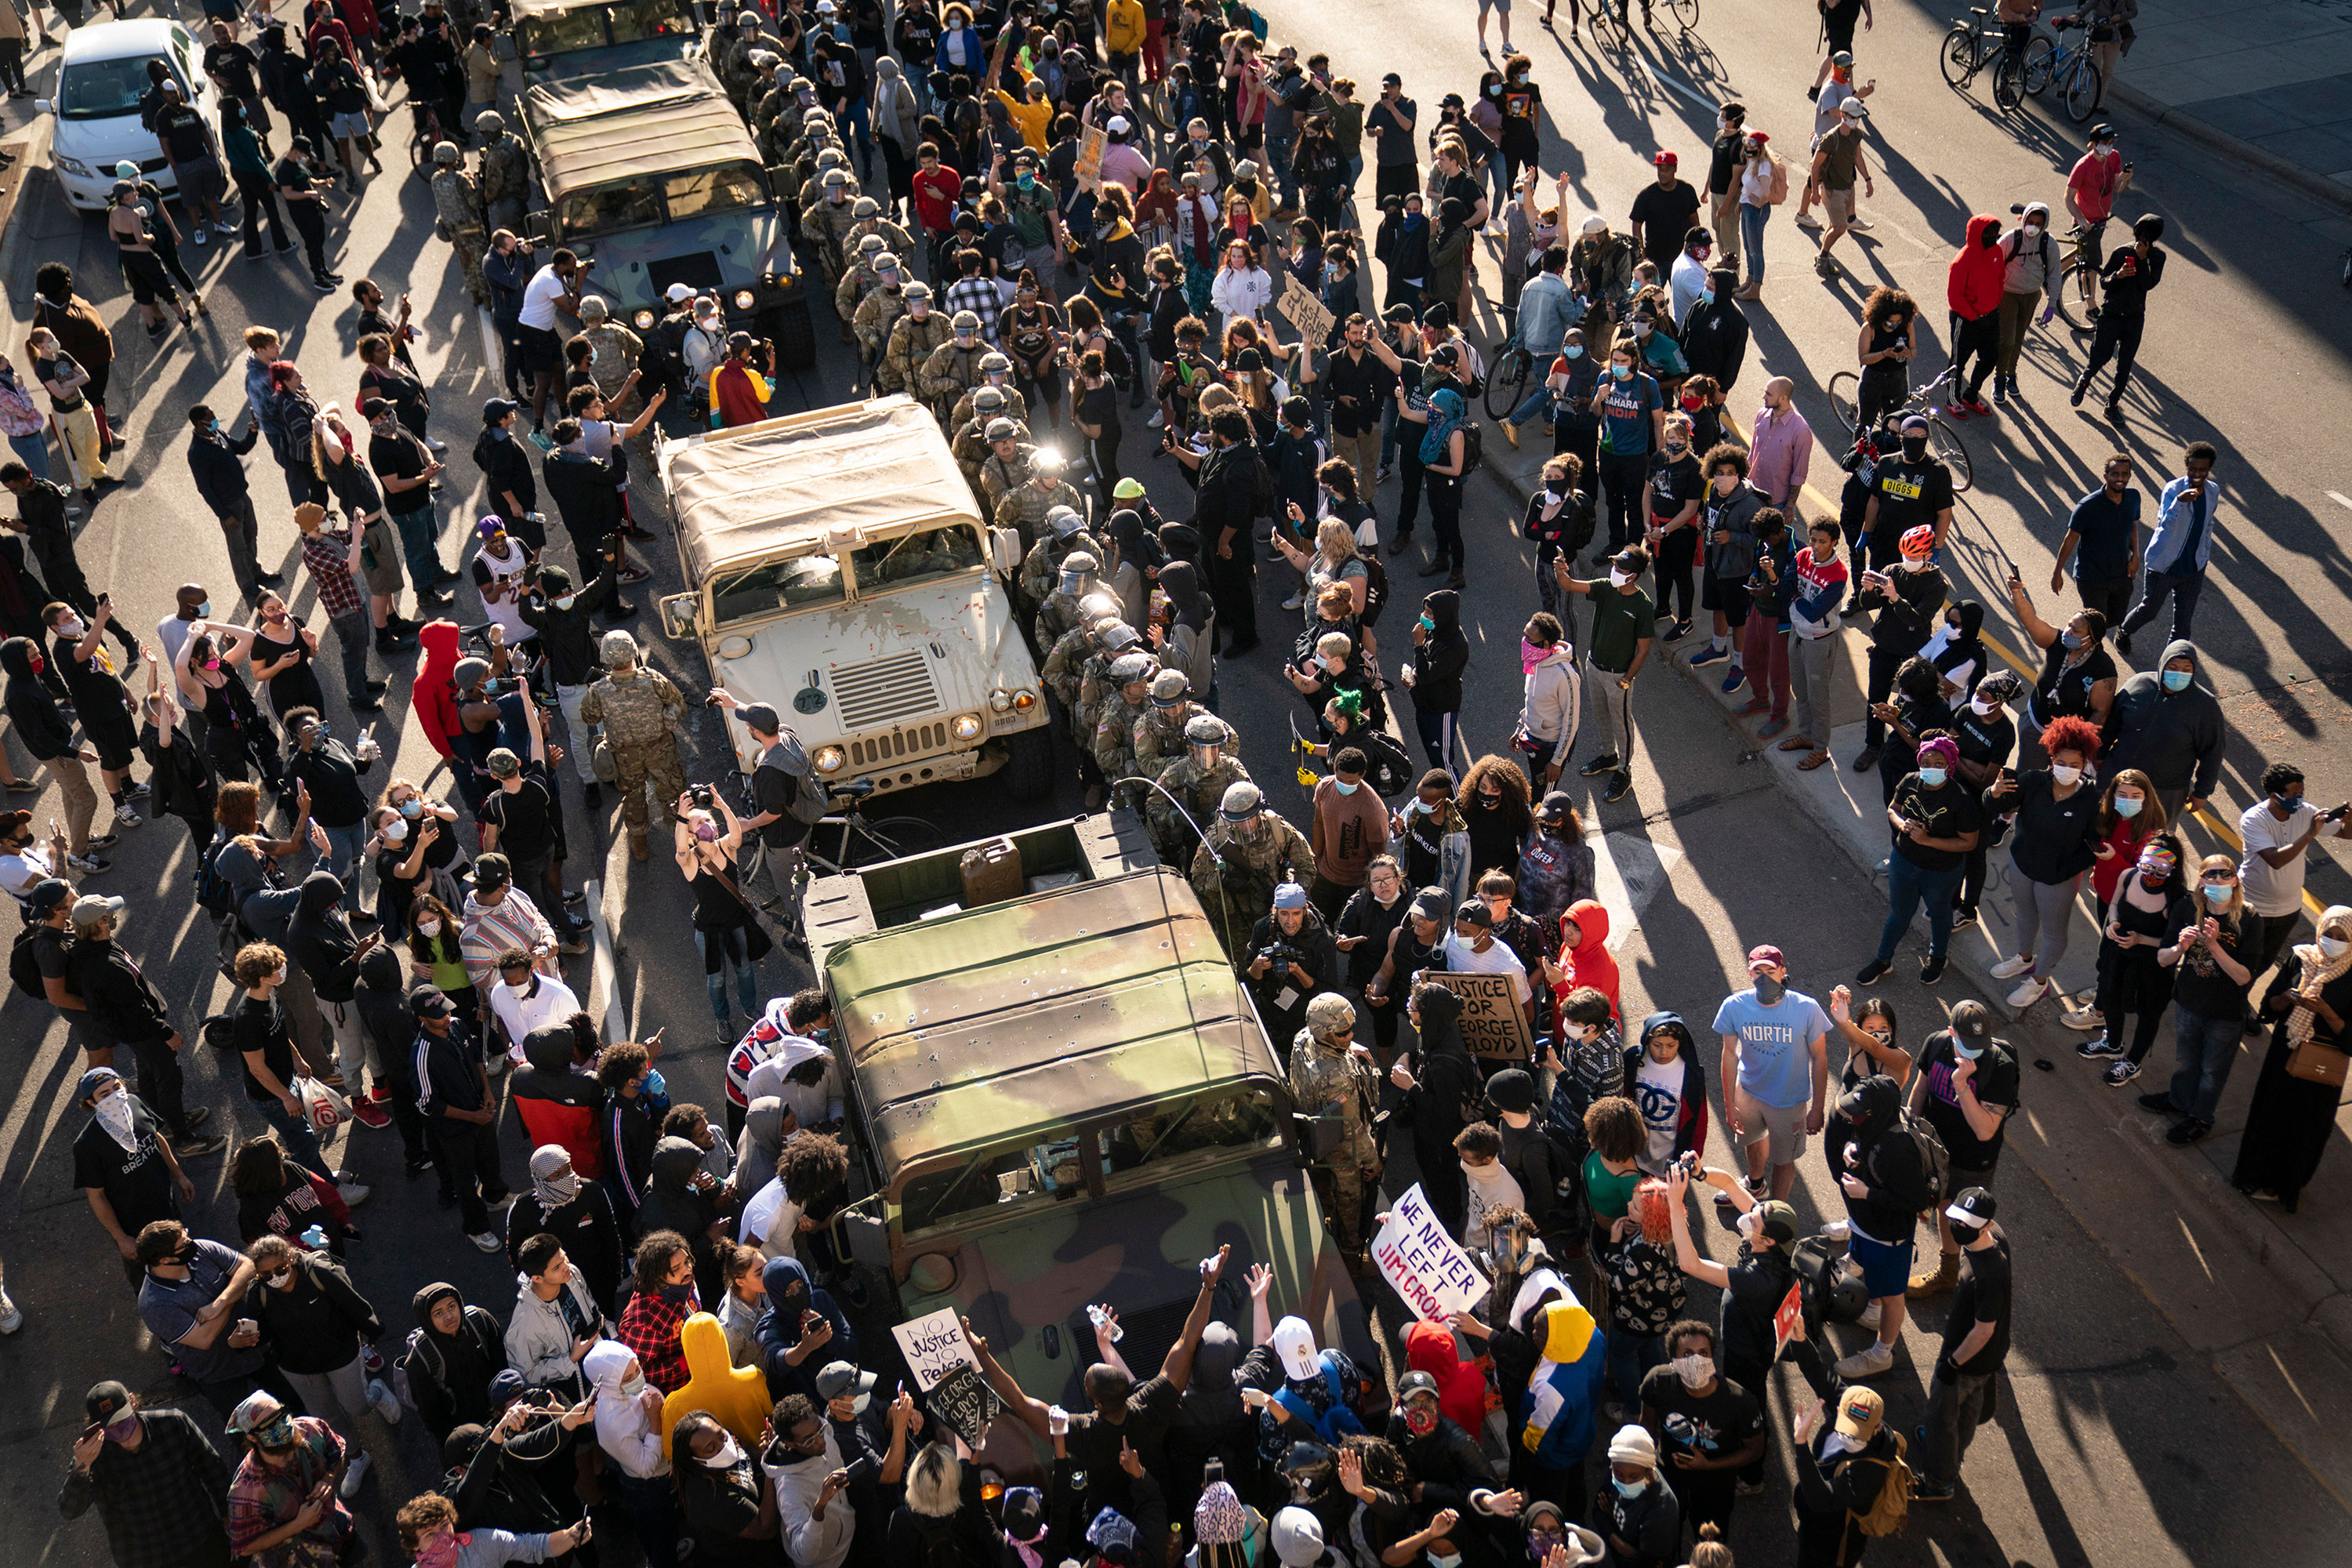 A group of protesters surround several National Guard vehicles on Lake Street in Minneapolis on May 29.